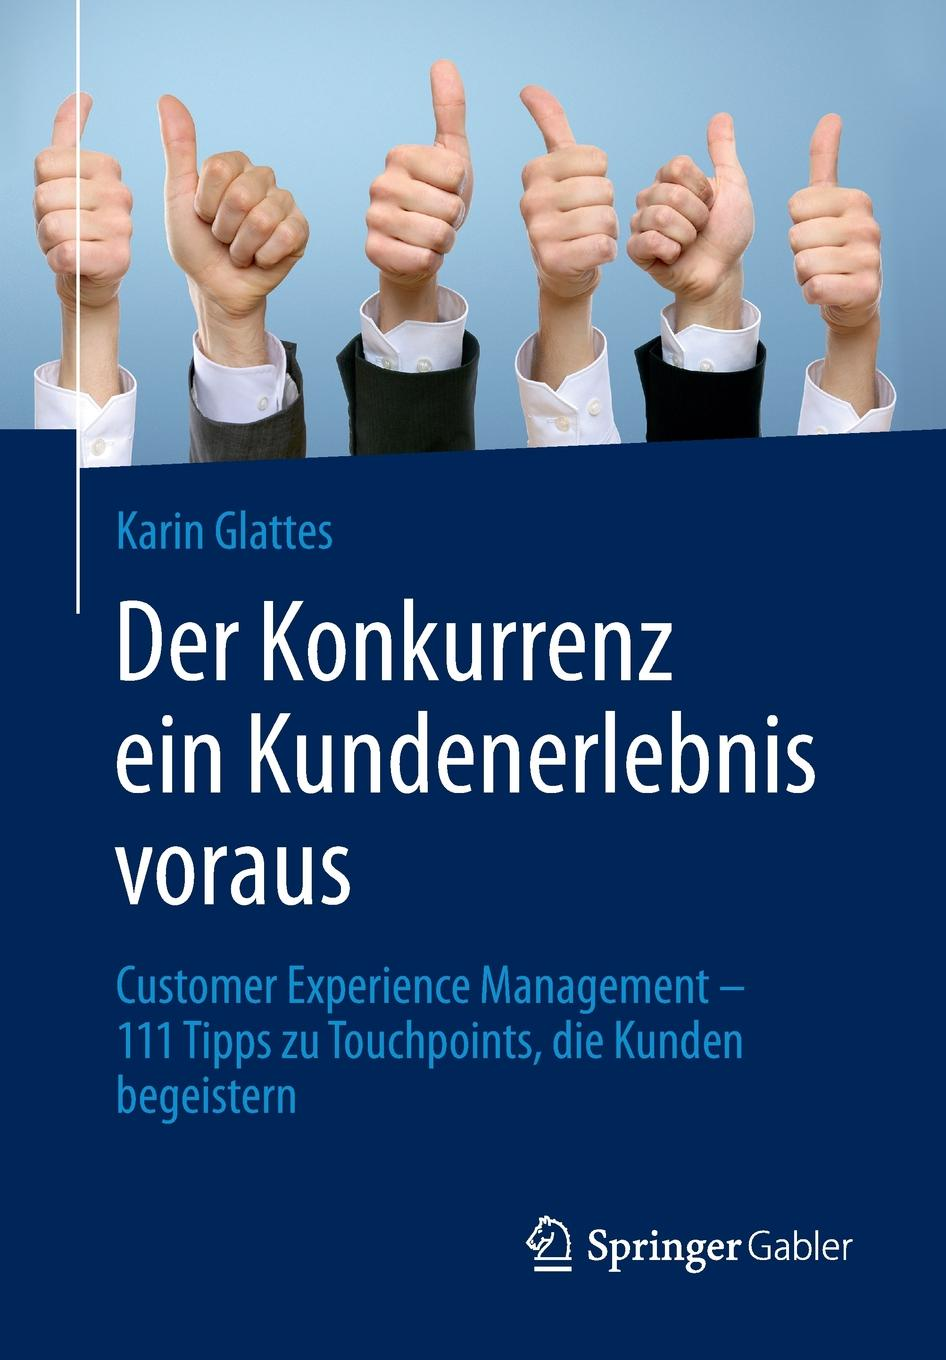 Karin Glattes Der Konkurrenz ein Kundenerlebnis voraus. Customer Experience Management - 111 Tipps zu Touchpoints, die Kunden begeistern aga kamilla it fur kunden qualitatsmanagement bei customer relationship management